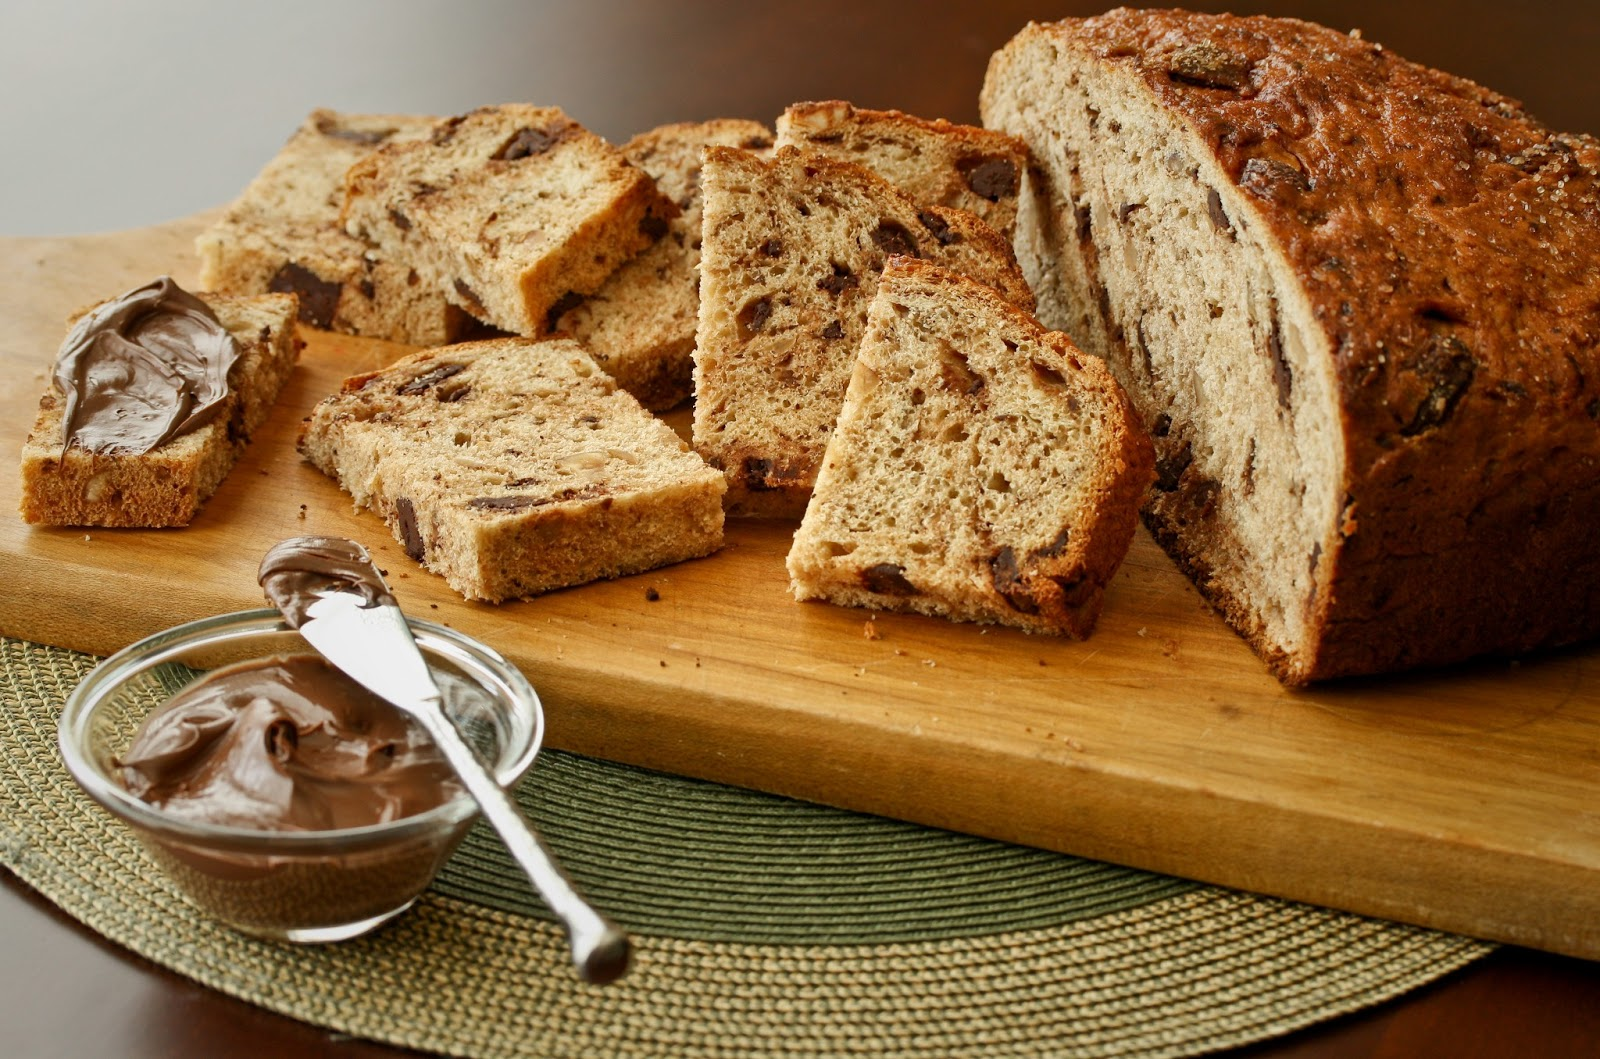 Chocolate+Bread-1.jpg